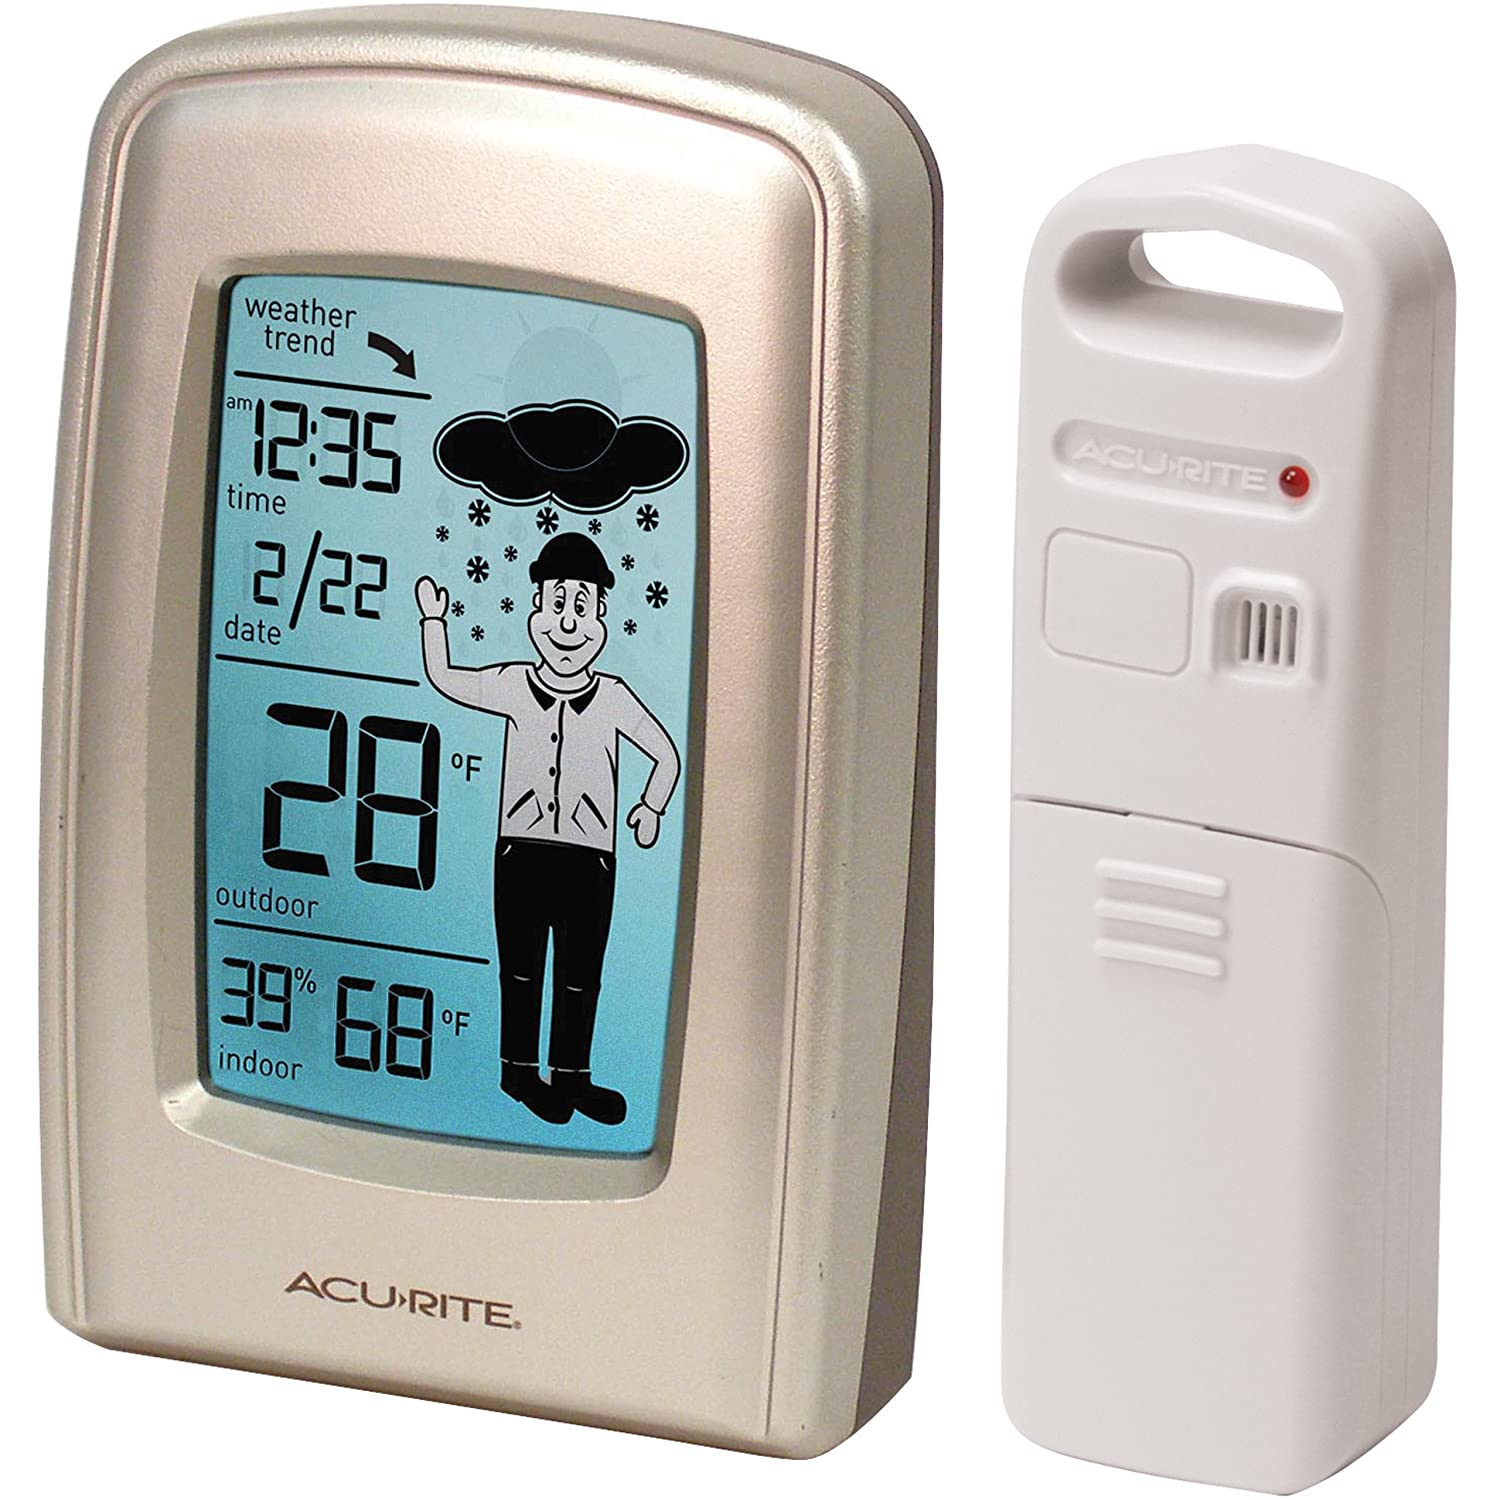 Amazoncom AcuRite 00827 WhattoWear Wireless Weather Forecaster